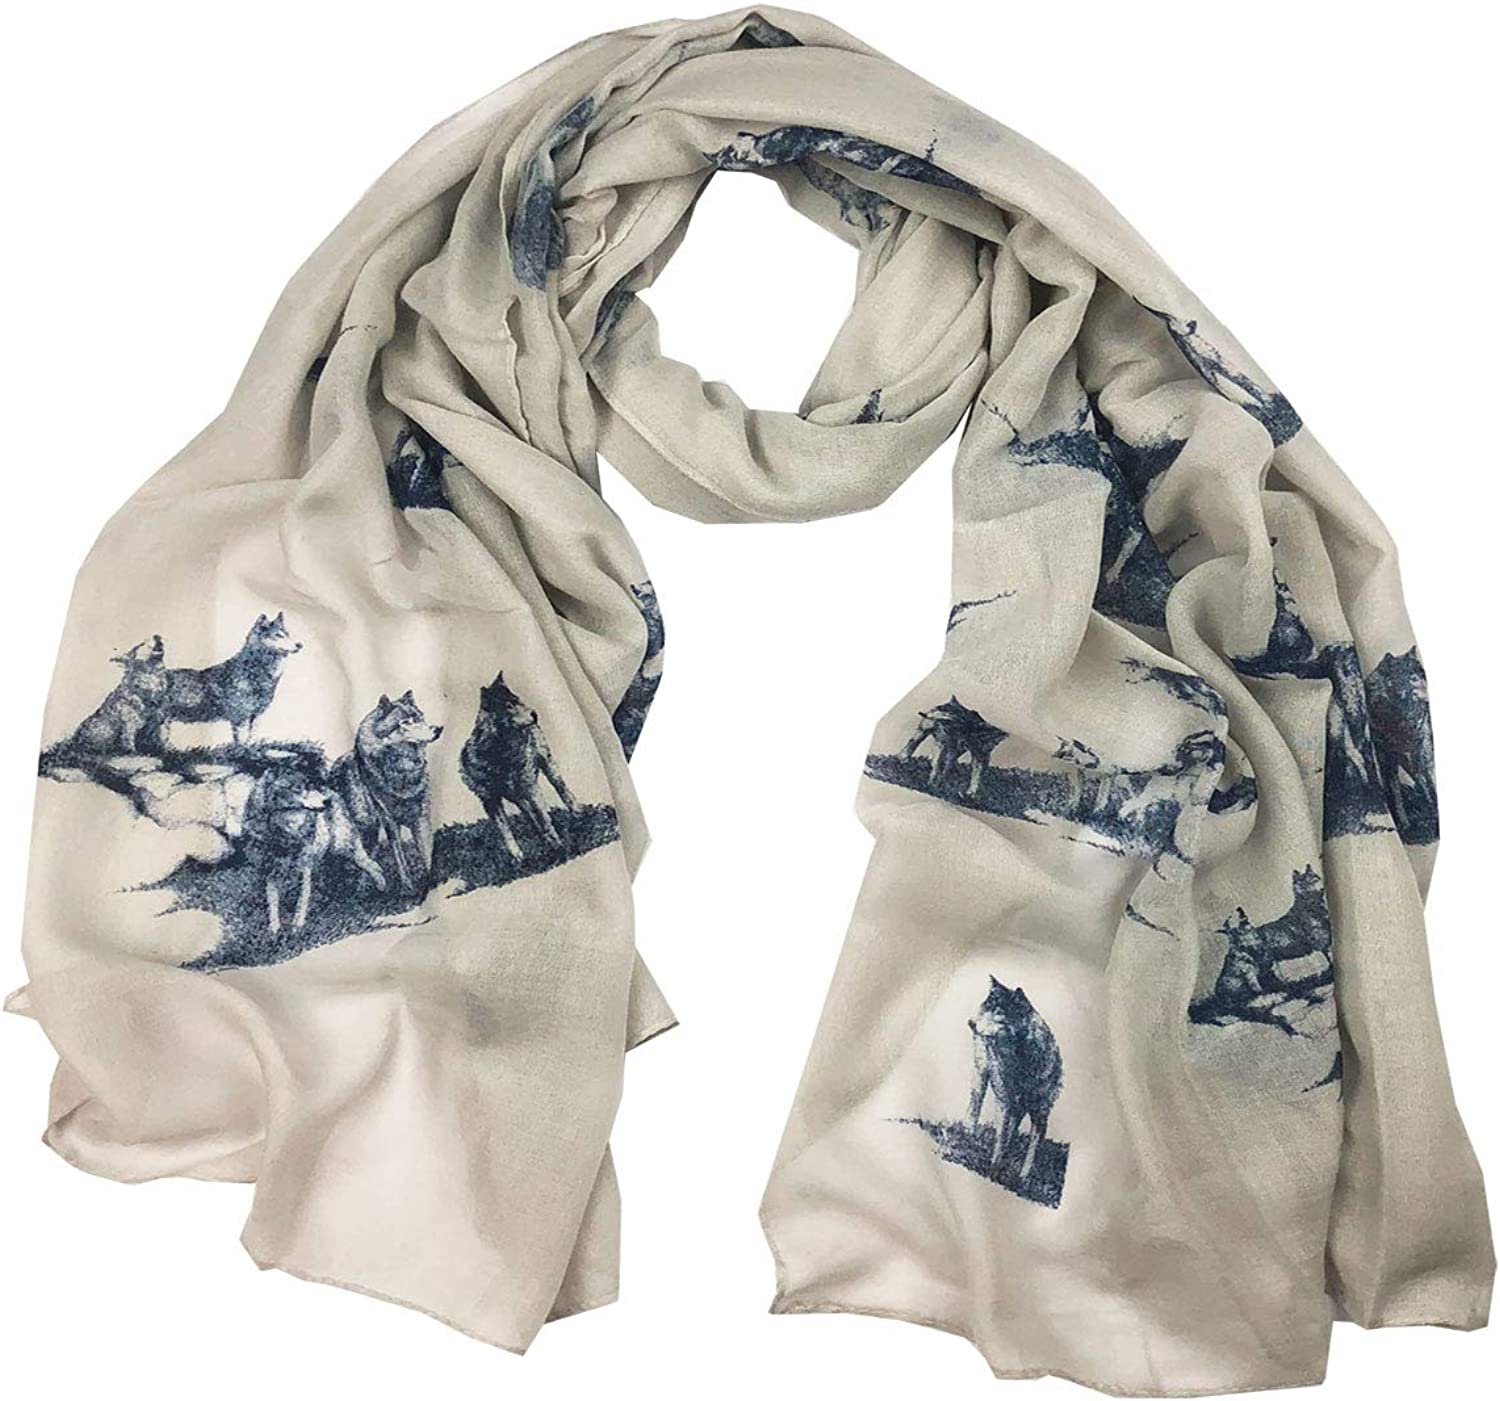 Wolf Viscose Oblong and Infinity Scarf CSJL66